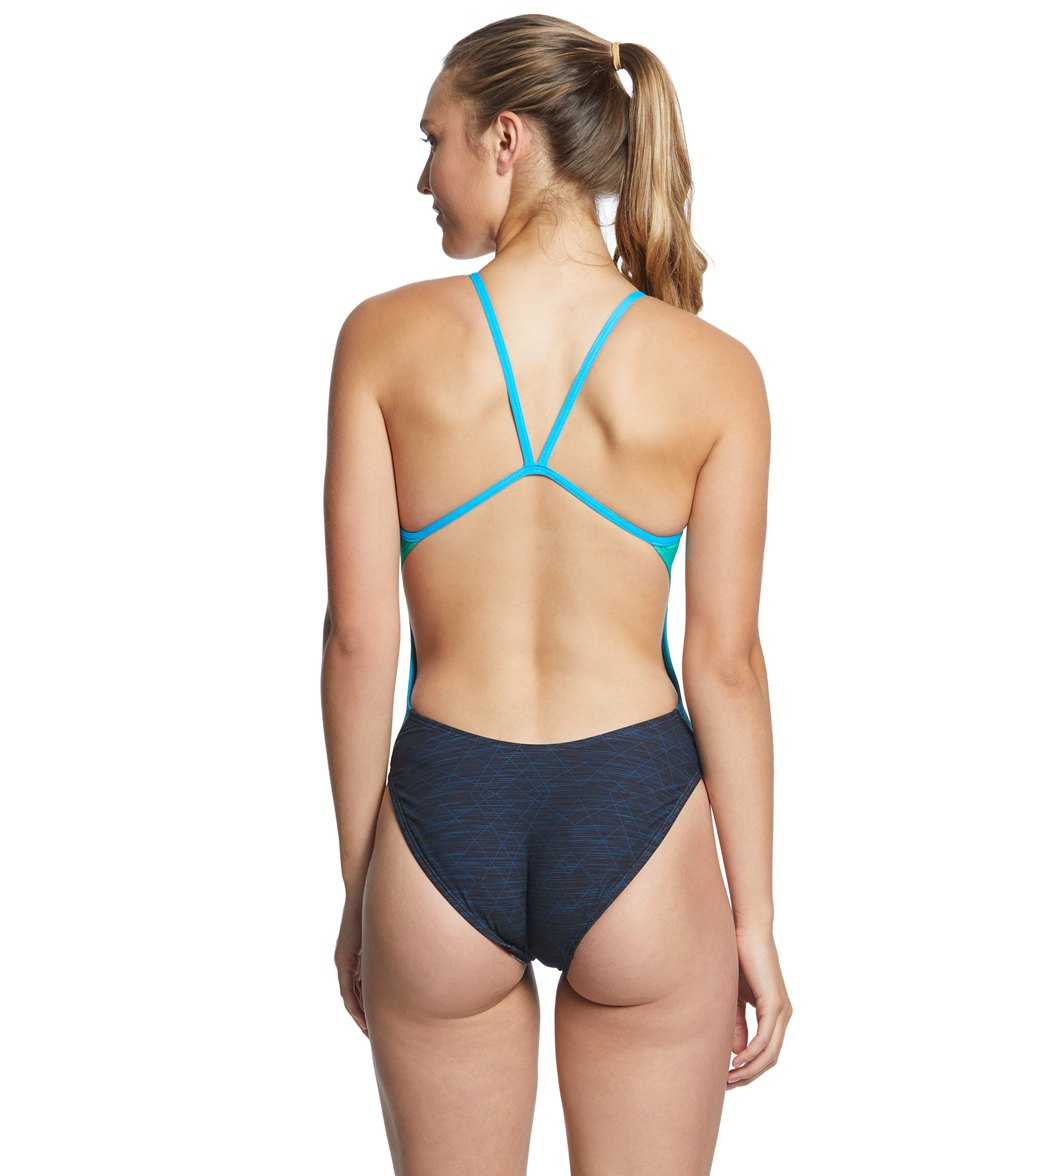 276f70cc4a TYR Women s Kinematic Cutoutfit One Piece Swimsuit at SwimOutlet.com ...